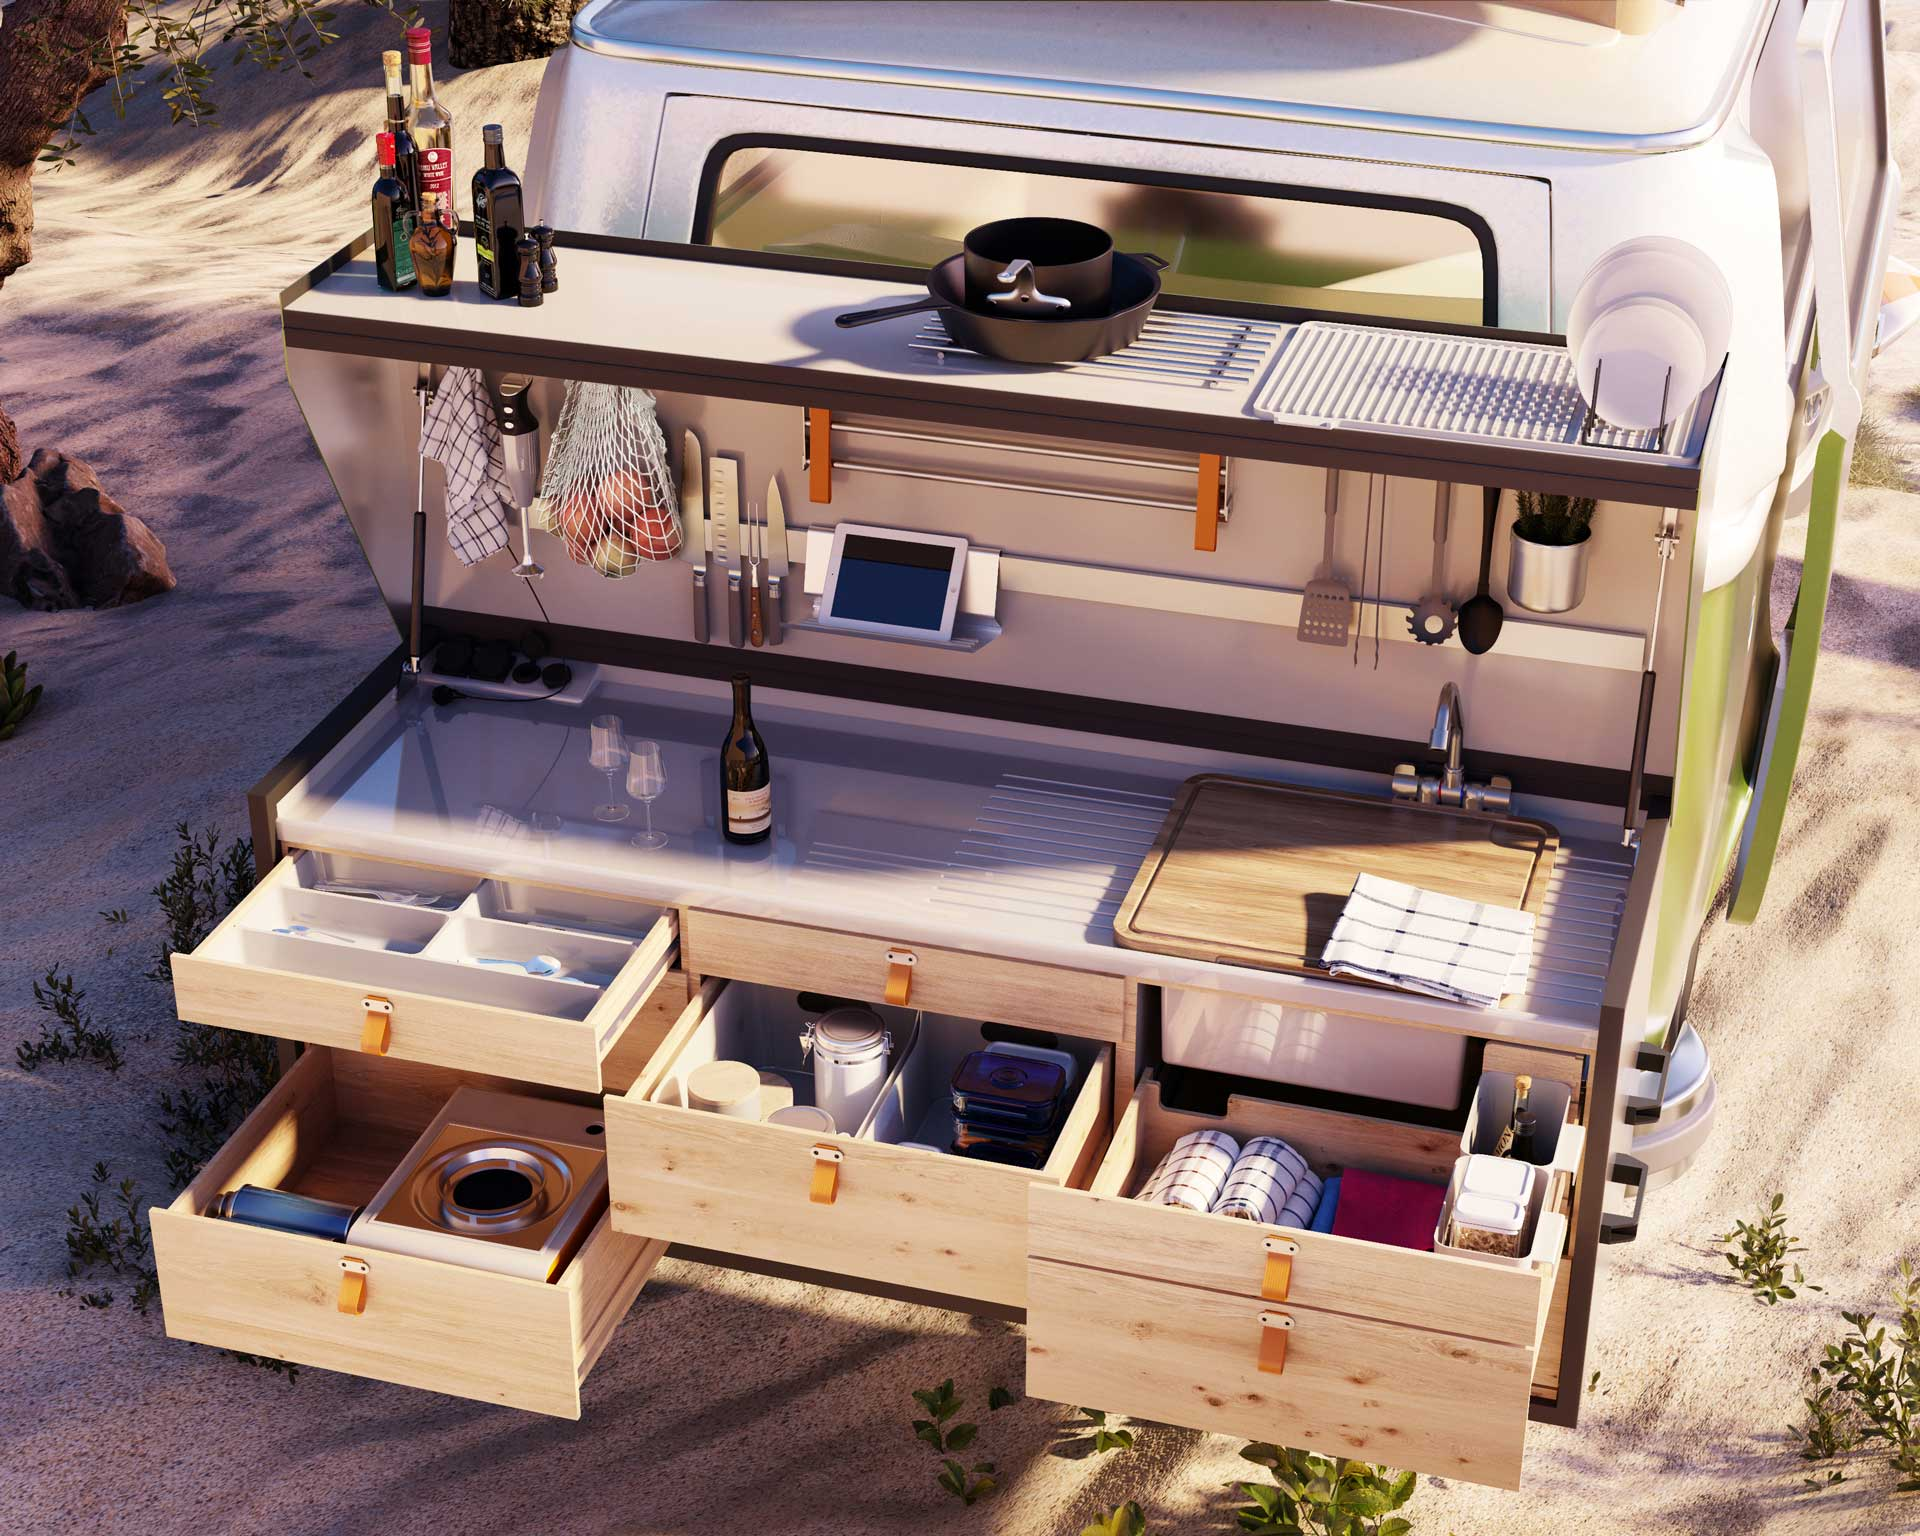 3d product rendering of a portable kitchen on the back of a camper van.